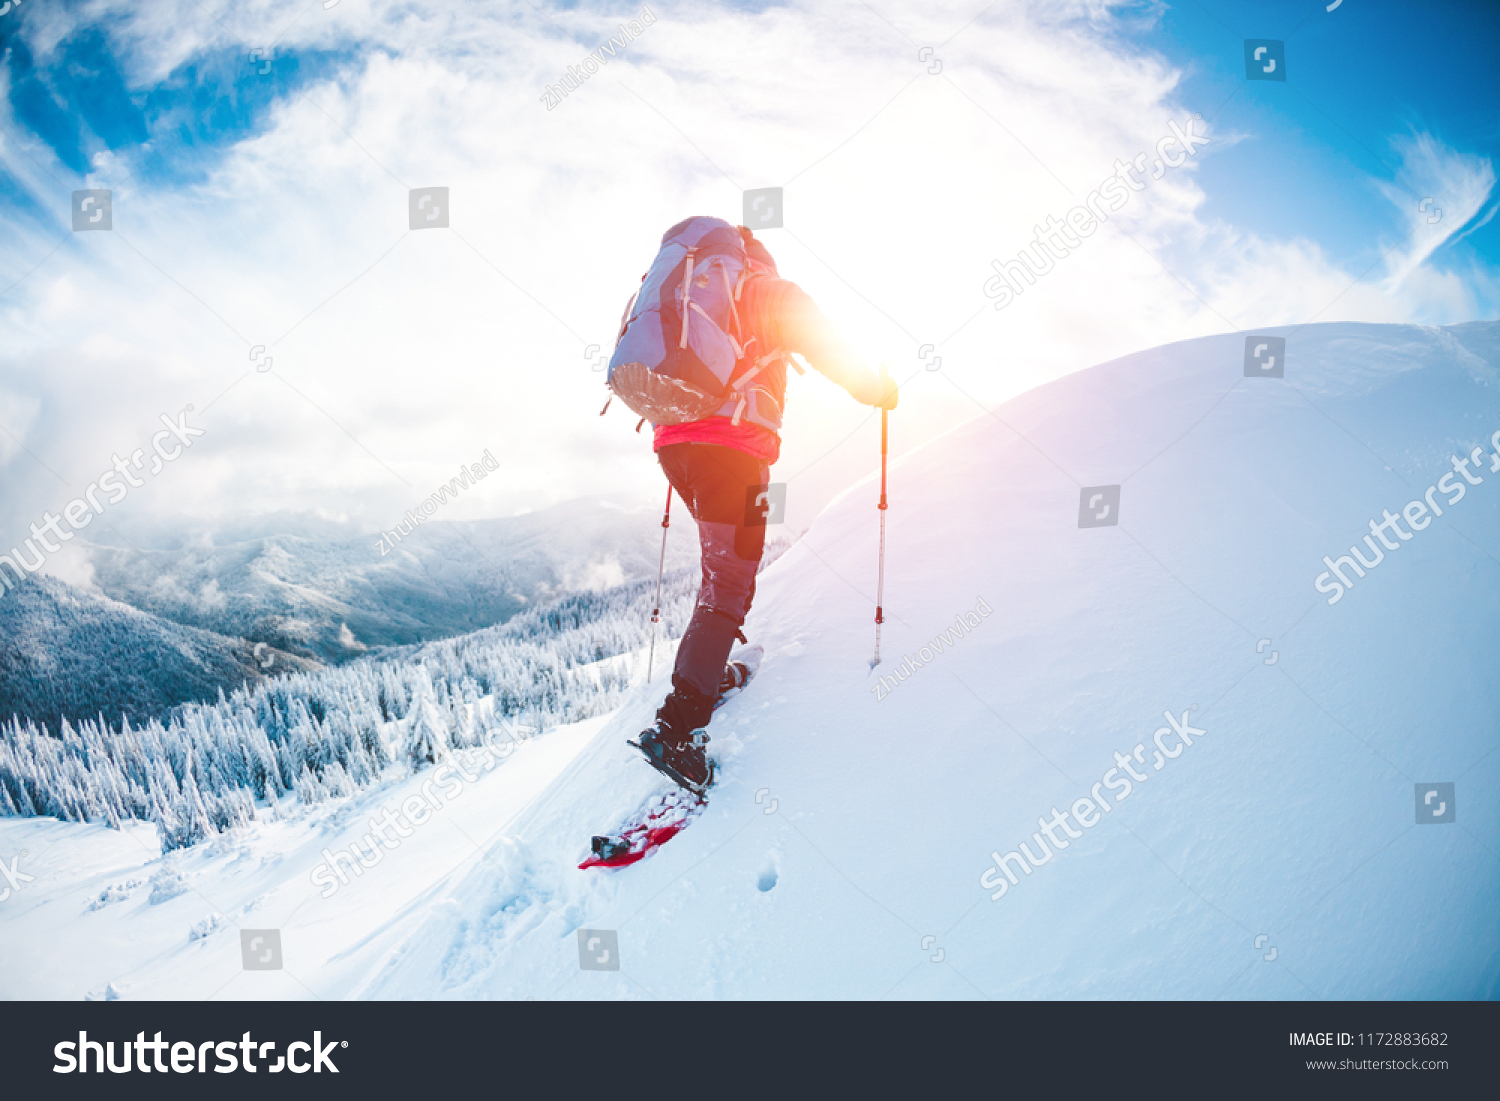 A man in snowshoes in the mountains in the winter. A climber with trekking sticks walks through the snow. Winter ascent. Beautiful sky with clouds. #1172883682